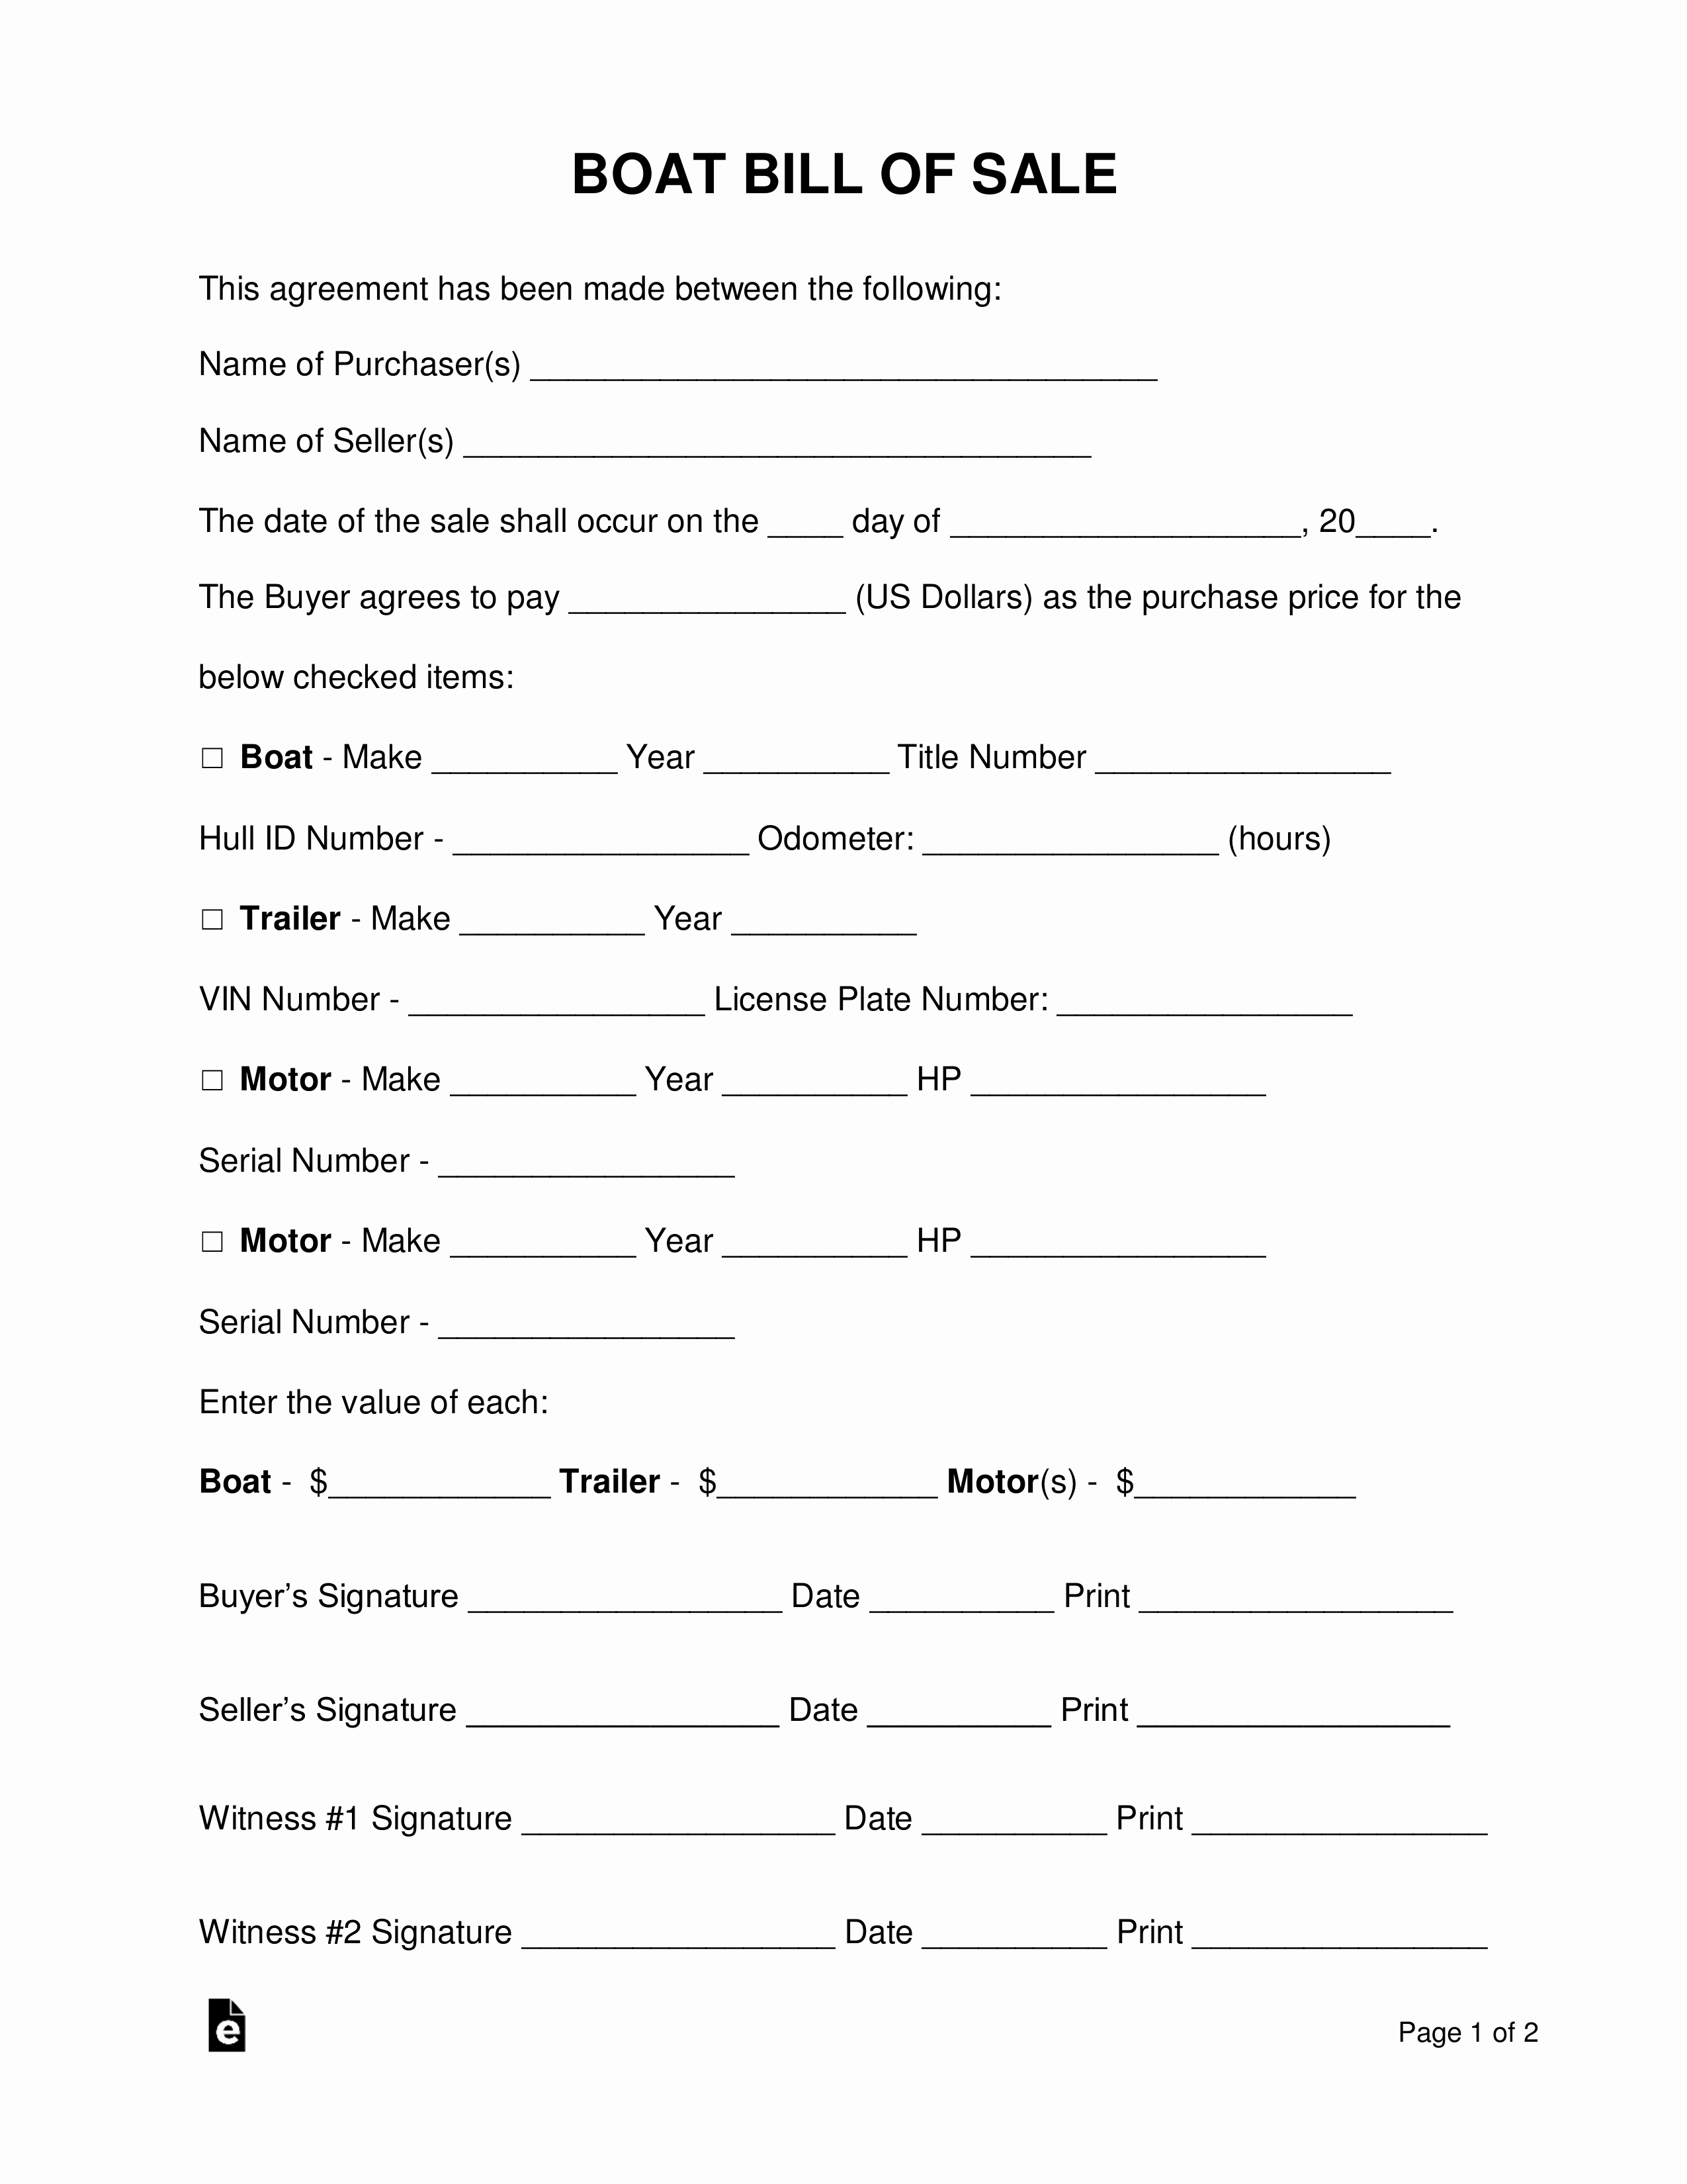 Free Boat Bill Of Sale Elegant Free Boat Vessel Bill Of Sale form Pdf Word